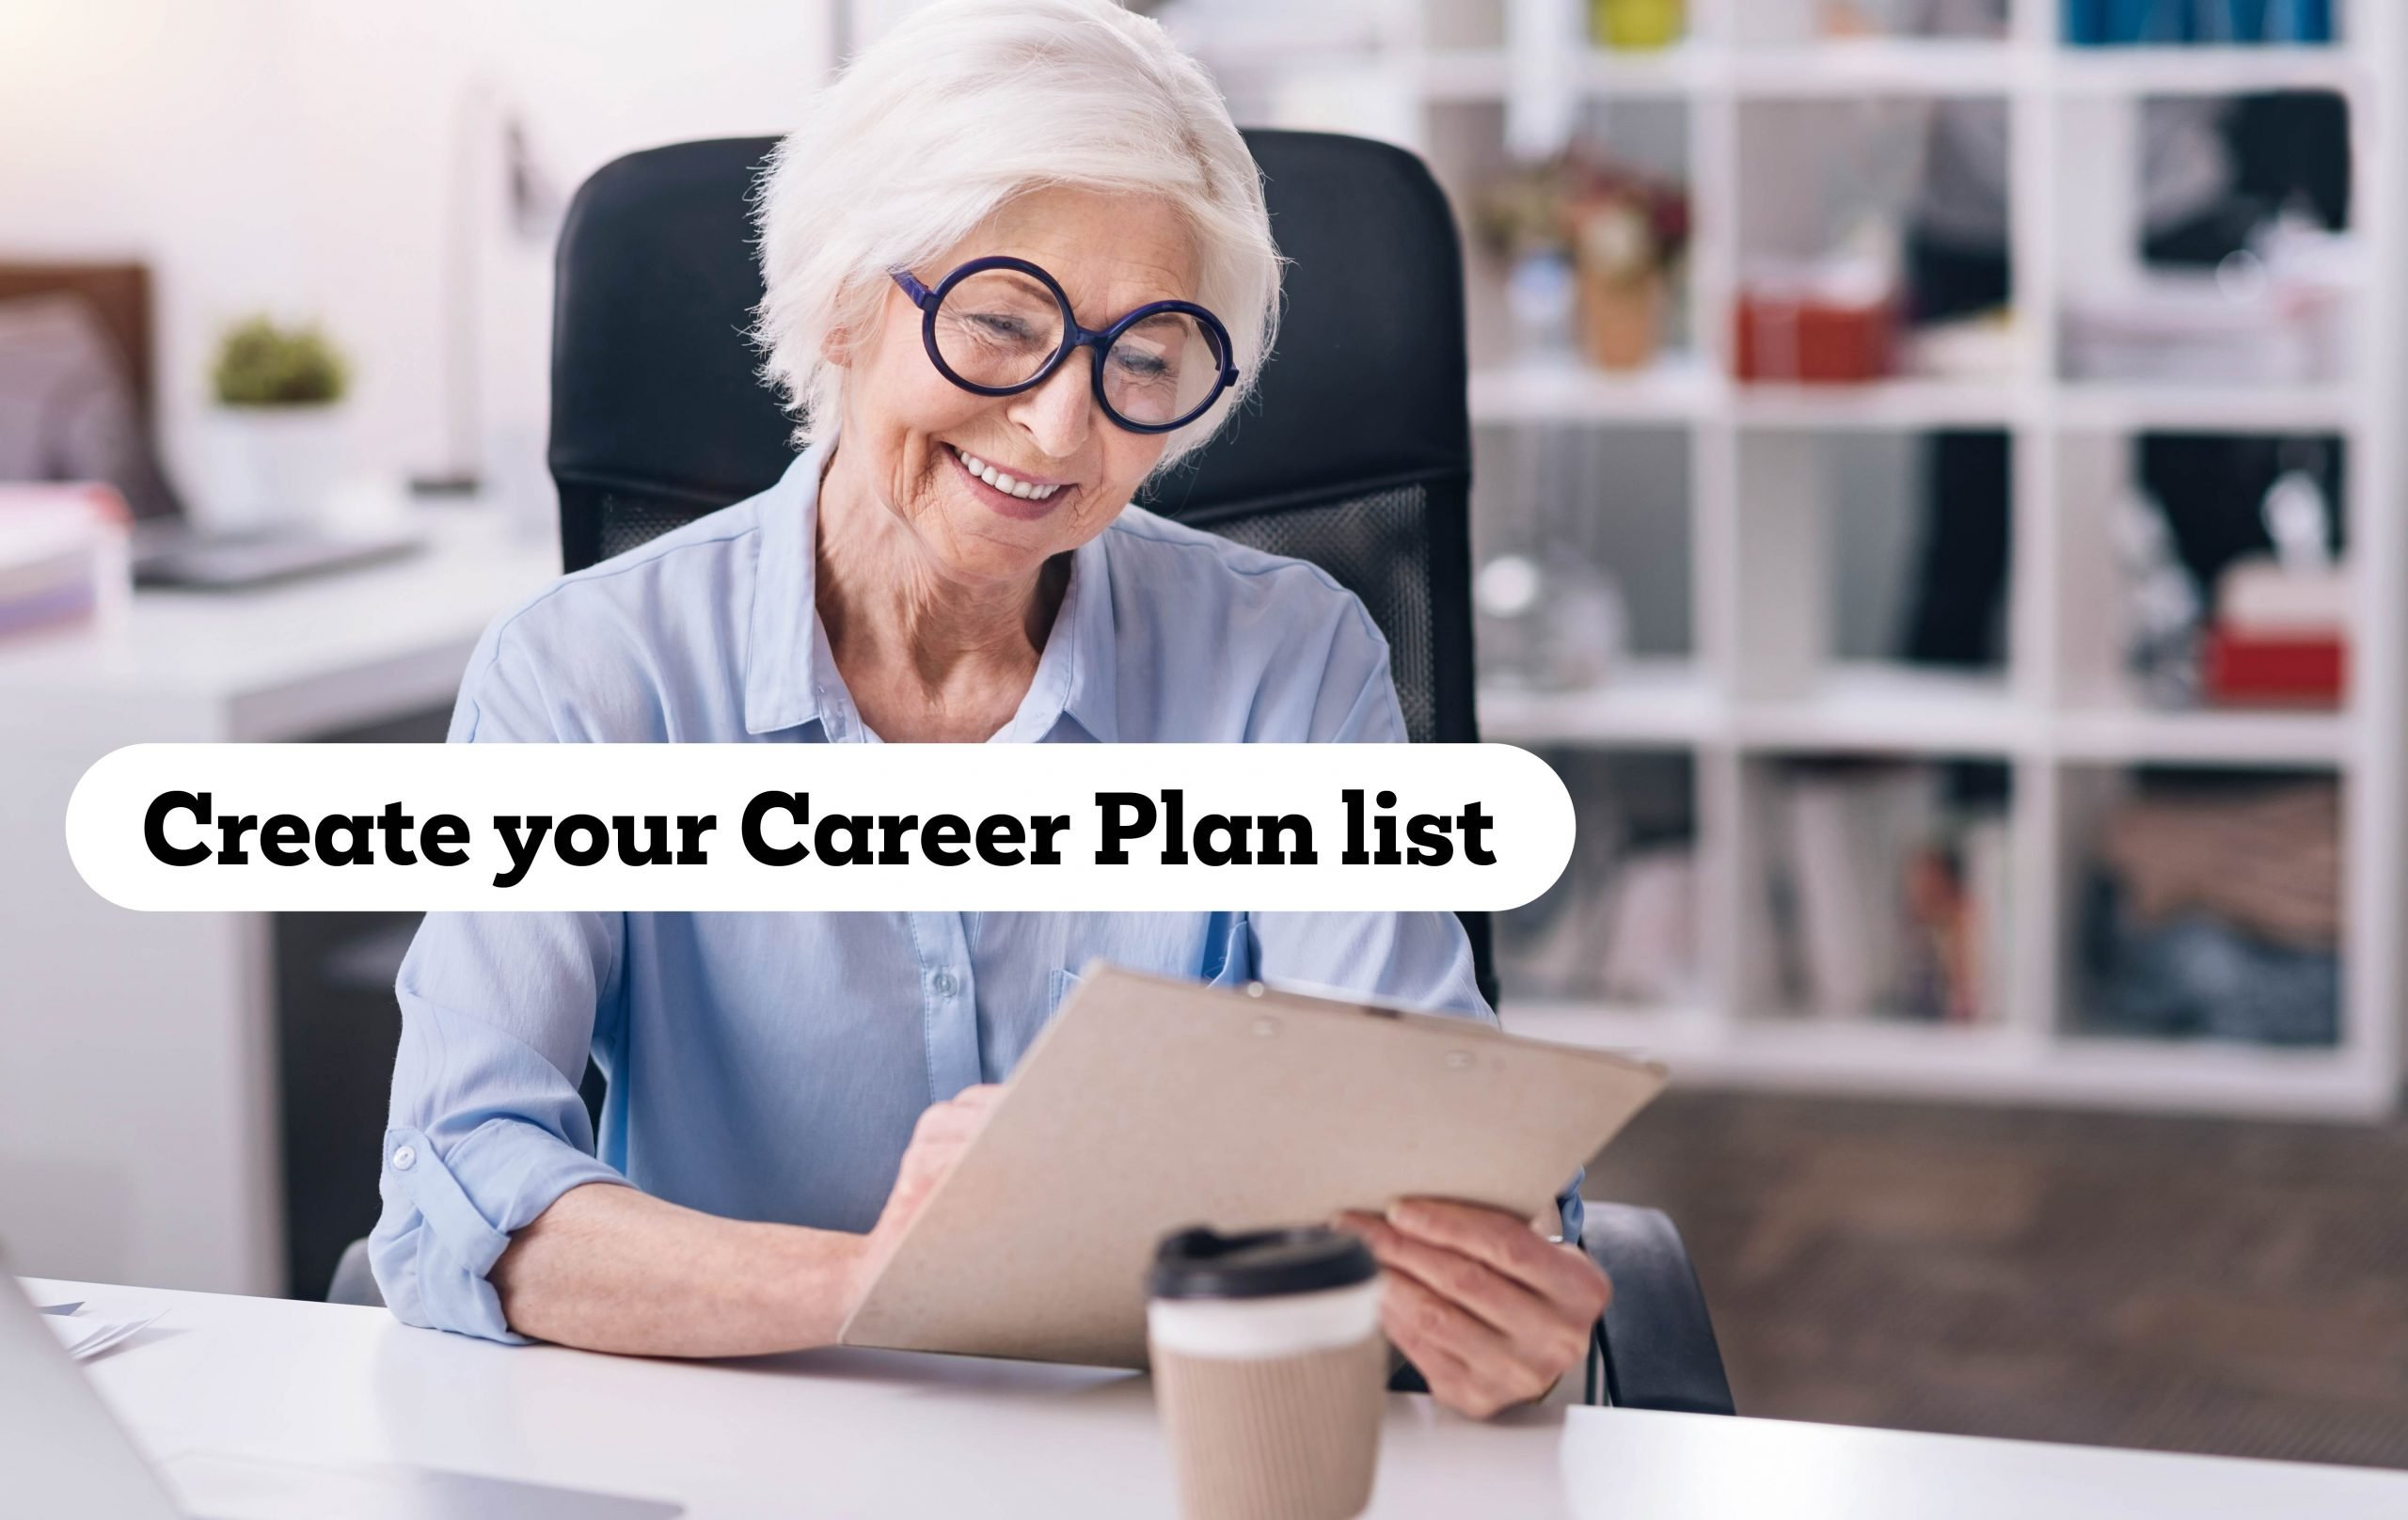 Getting a job in your 50s: a mature aged woman listing her career plan